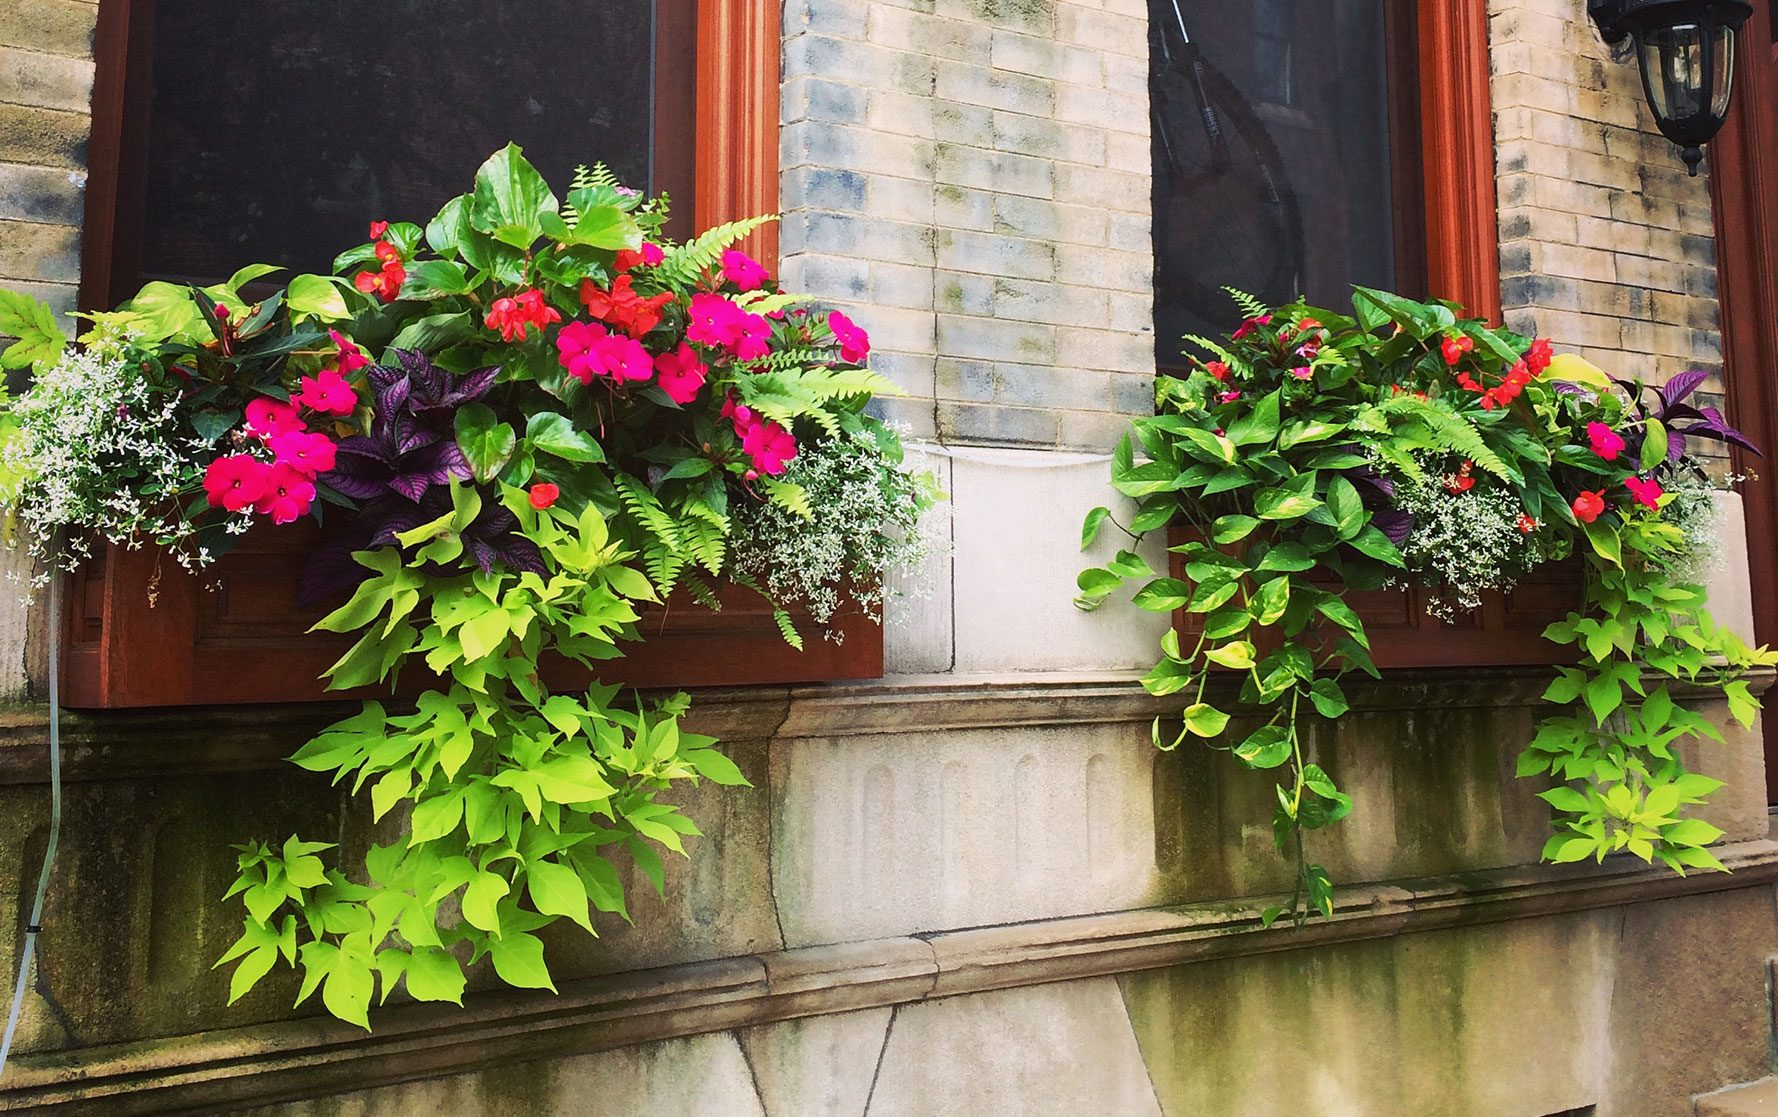 Two Summer Planter Arrangements in wooden window boxes